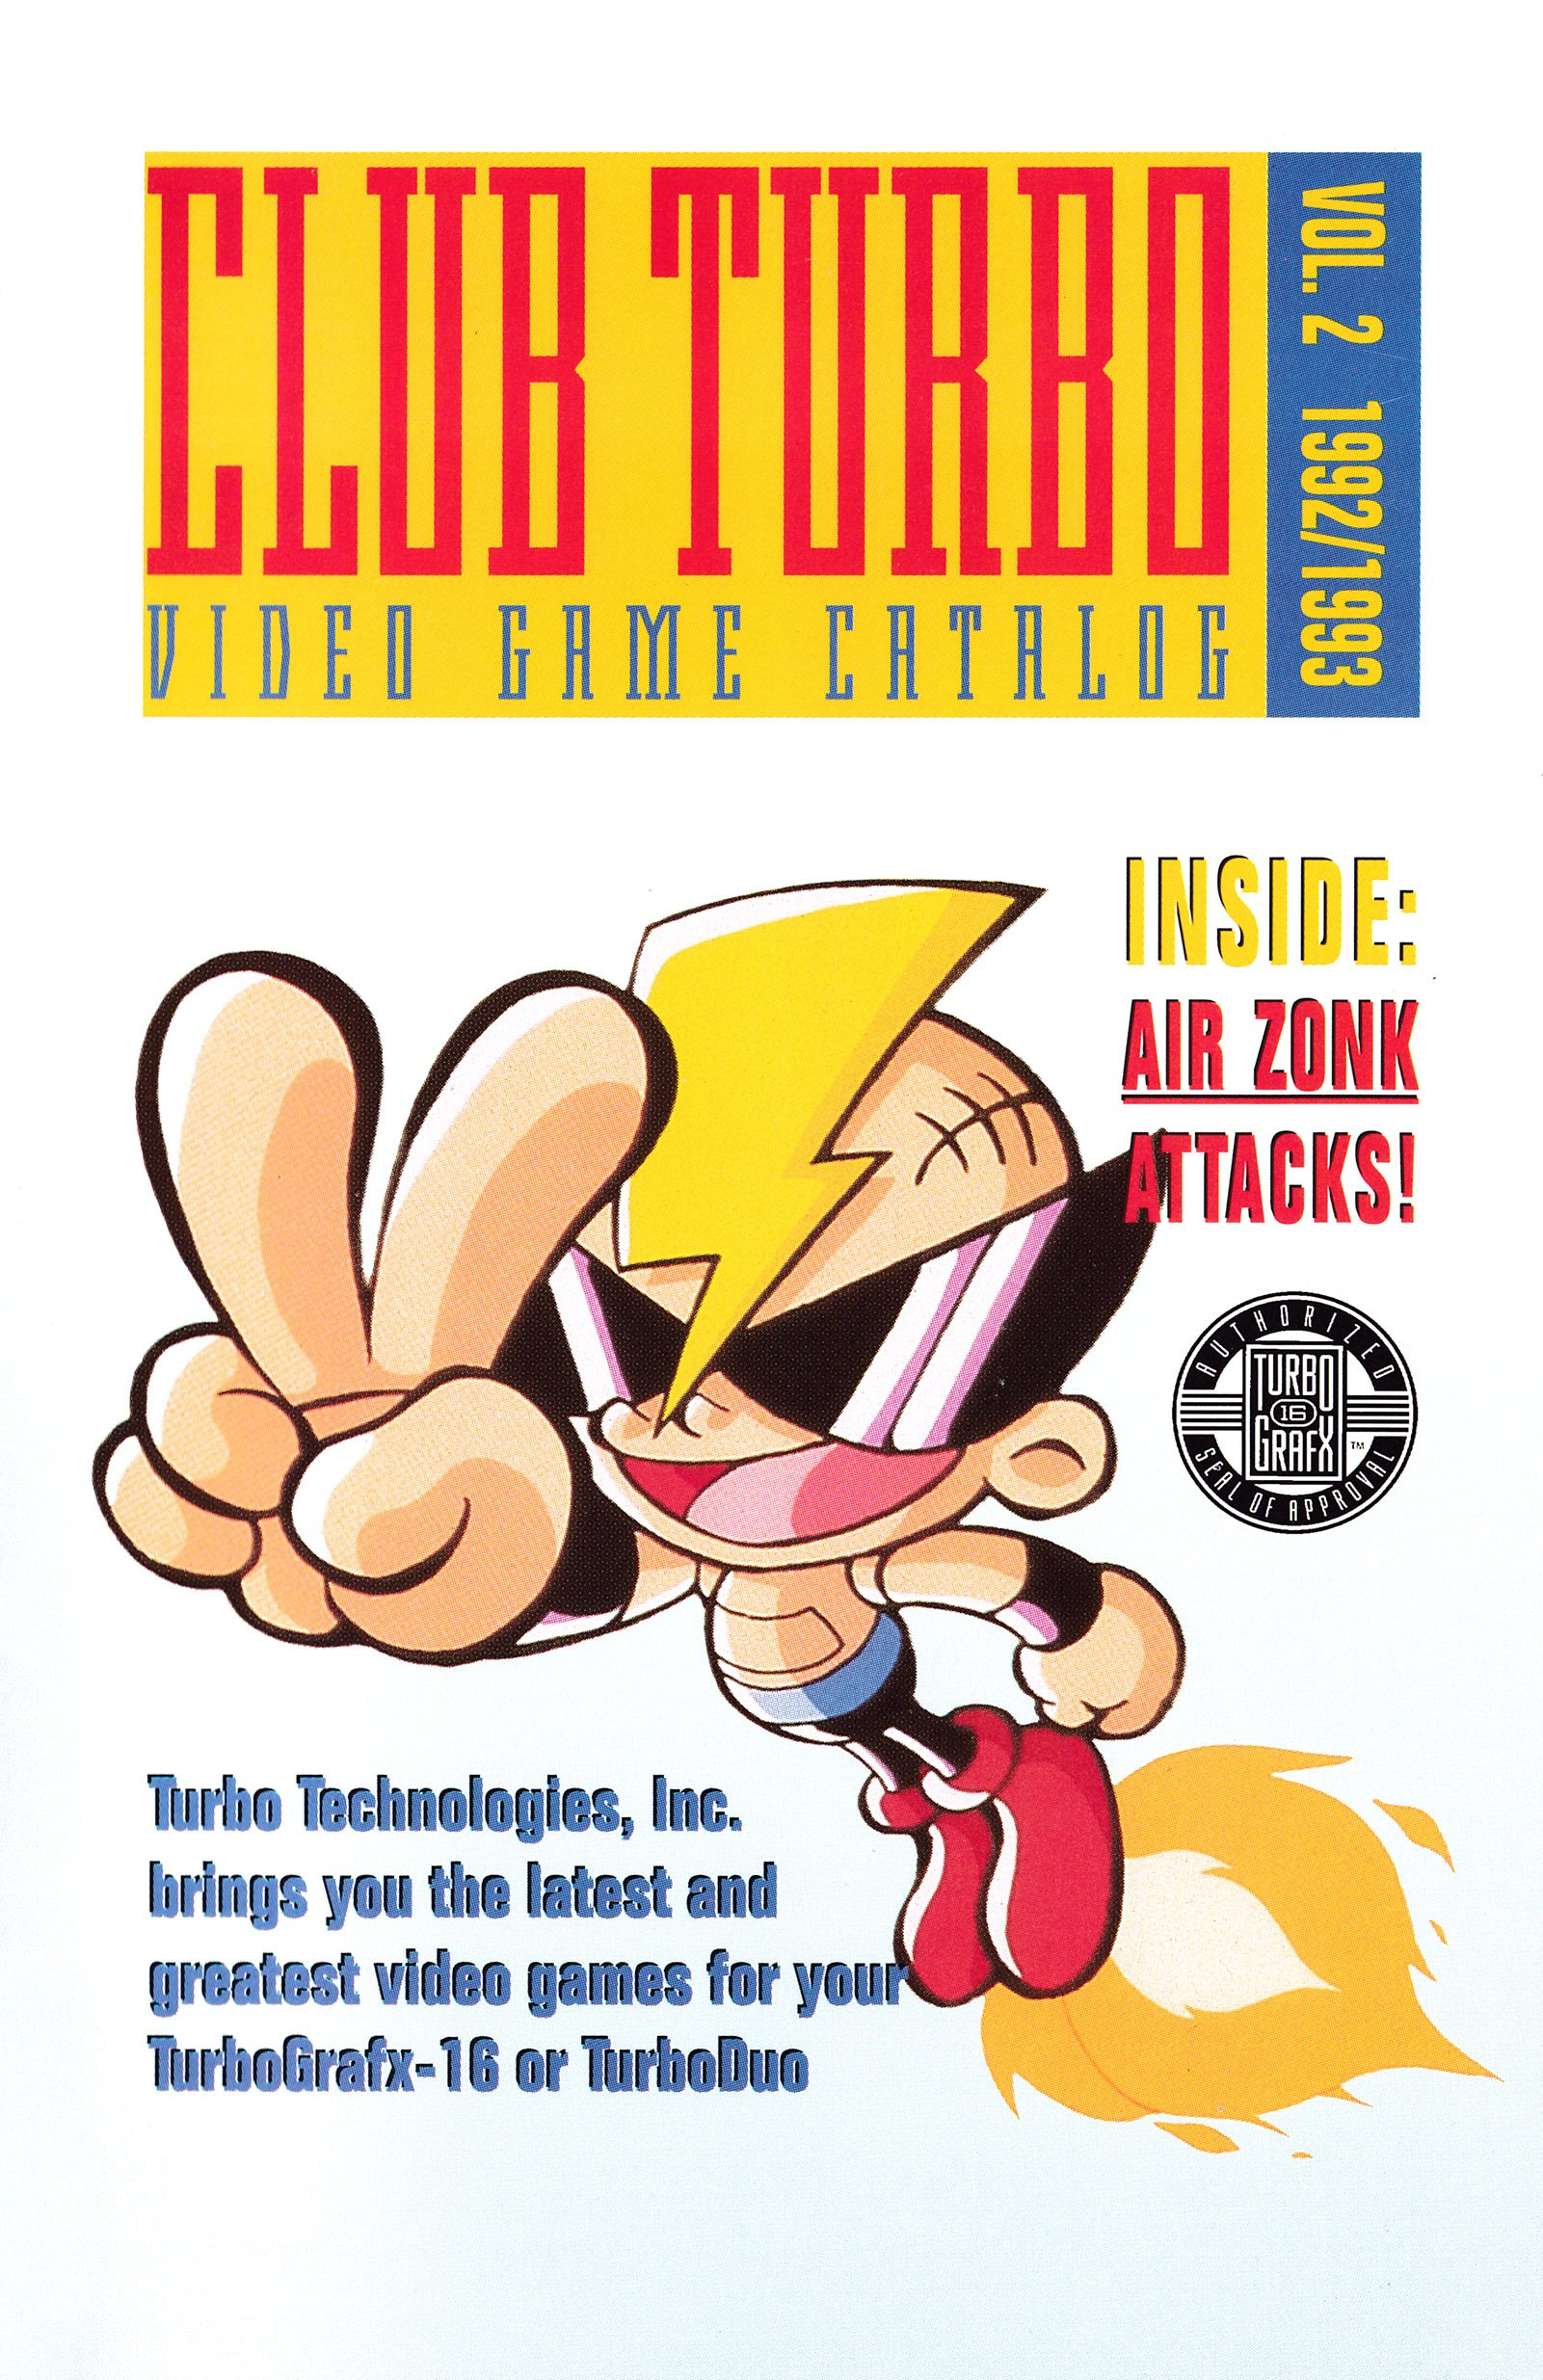 Club Turbo Catalog of Games Volume 2 (1992-1993)